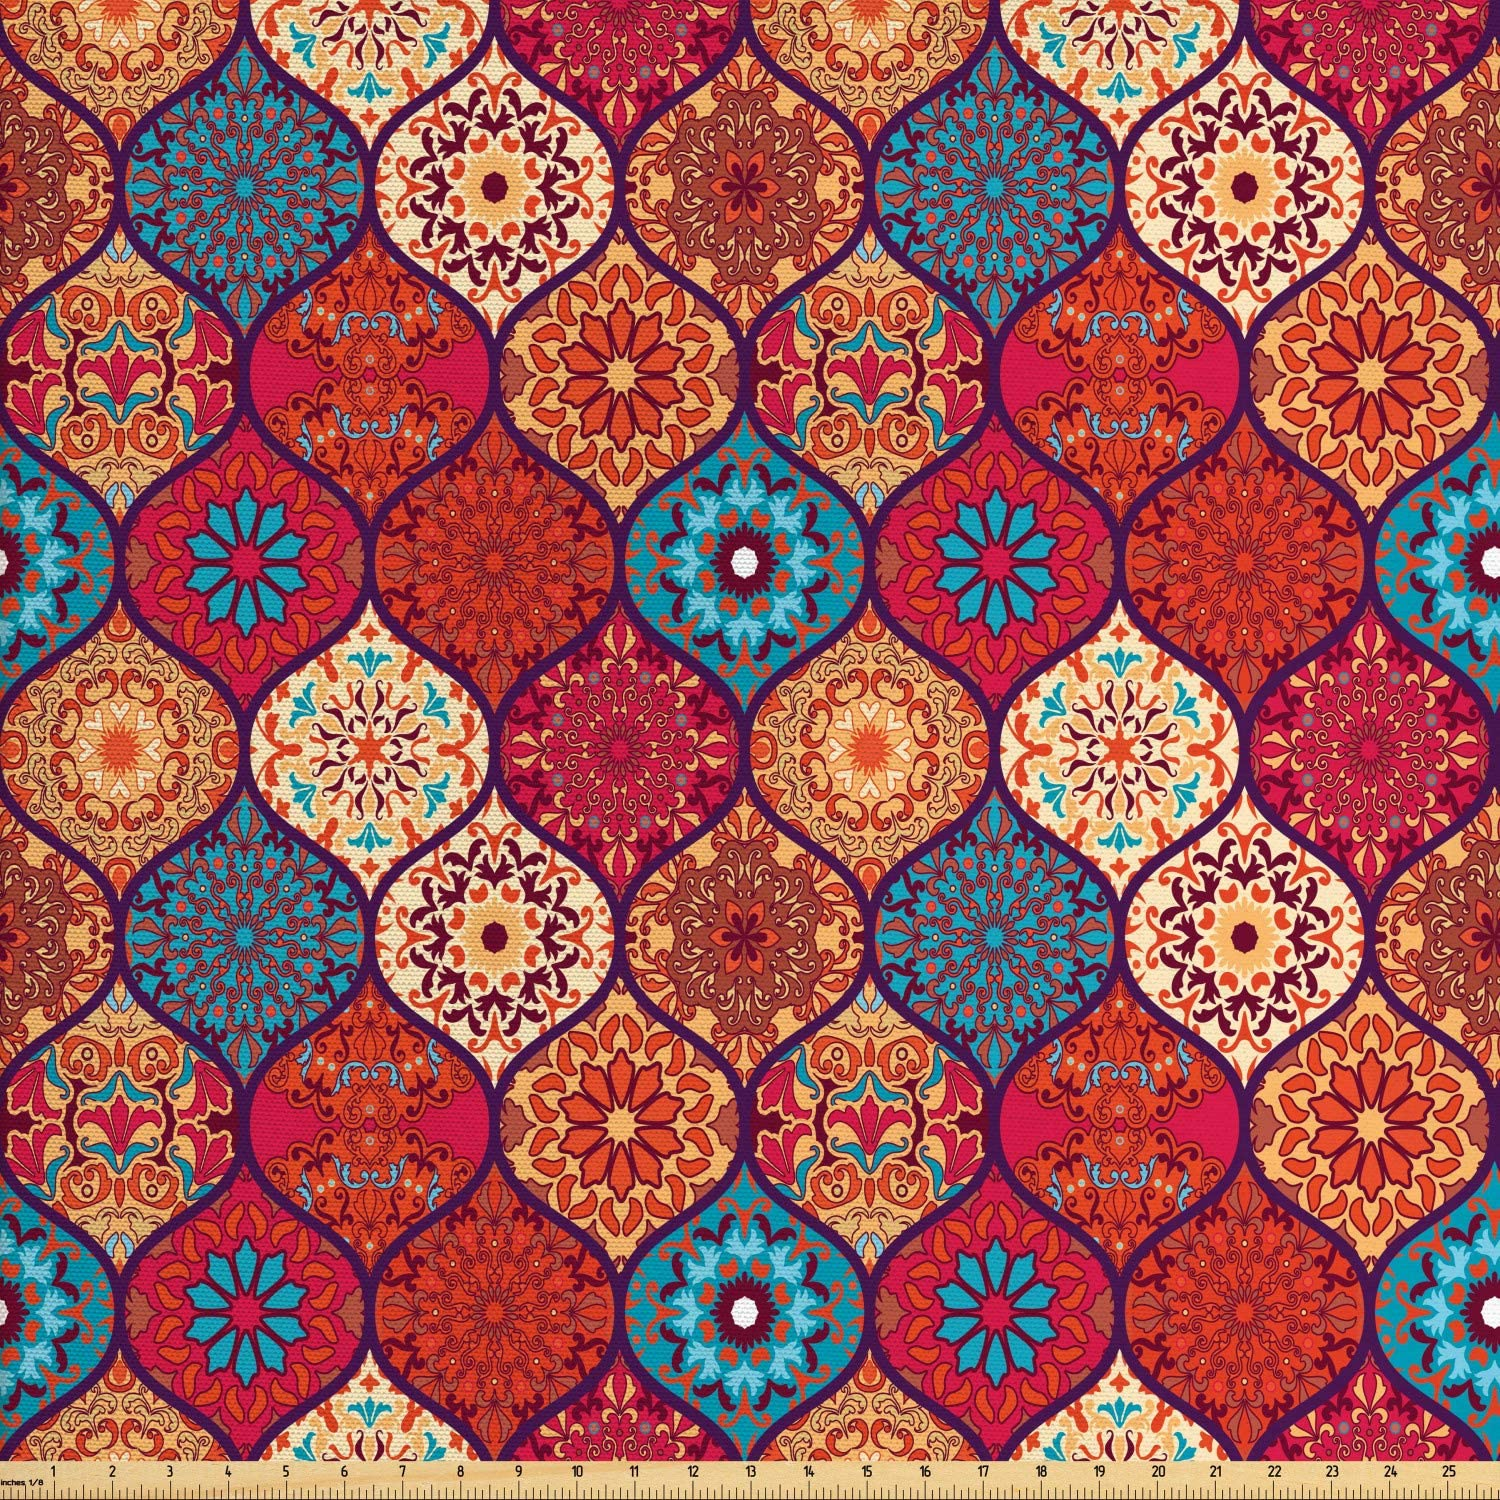 Ambesonne Moroccan Fabric by The Yard, Oriental Wavy Curvy Pattern with Spring Nature Inspired Retro Style Art Motifs, Decorative Fabric for Upholstery and Home Accents, 5 Yards, Ruby Orange